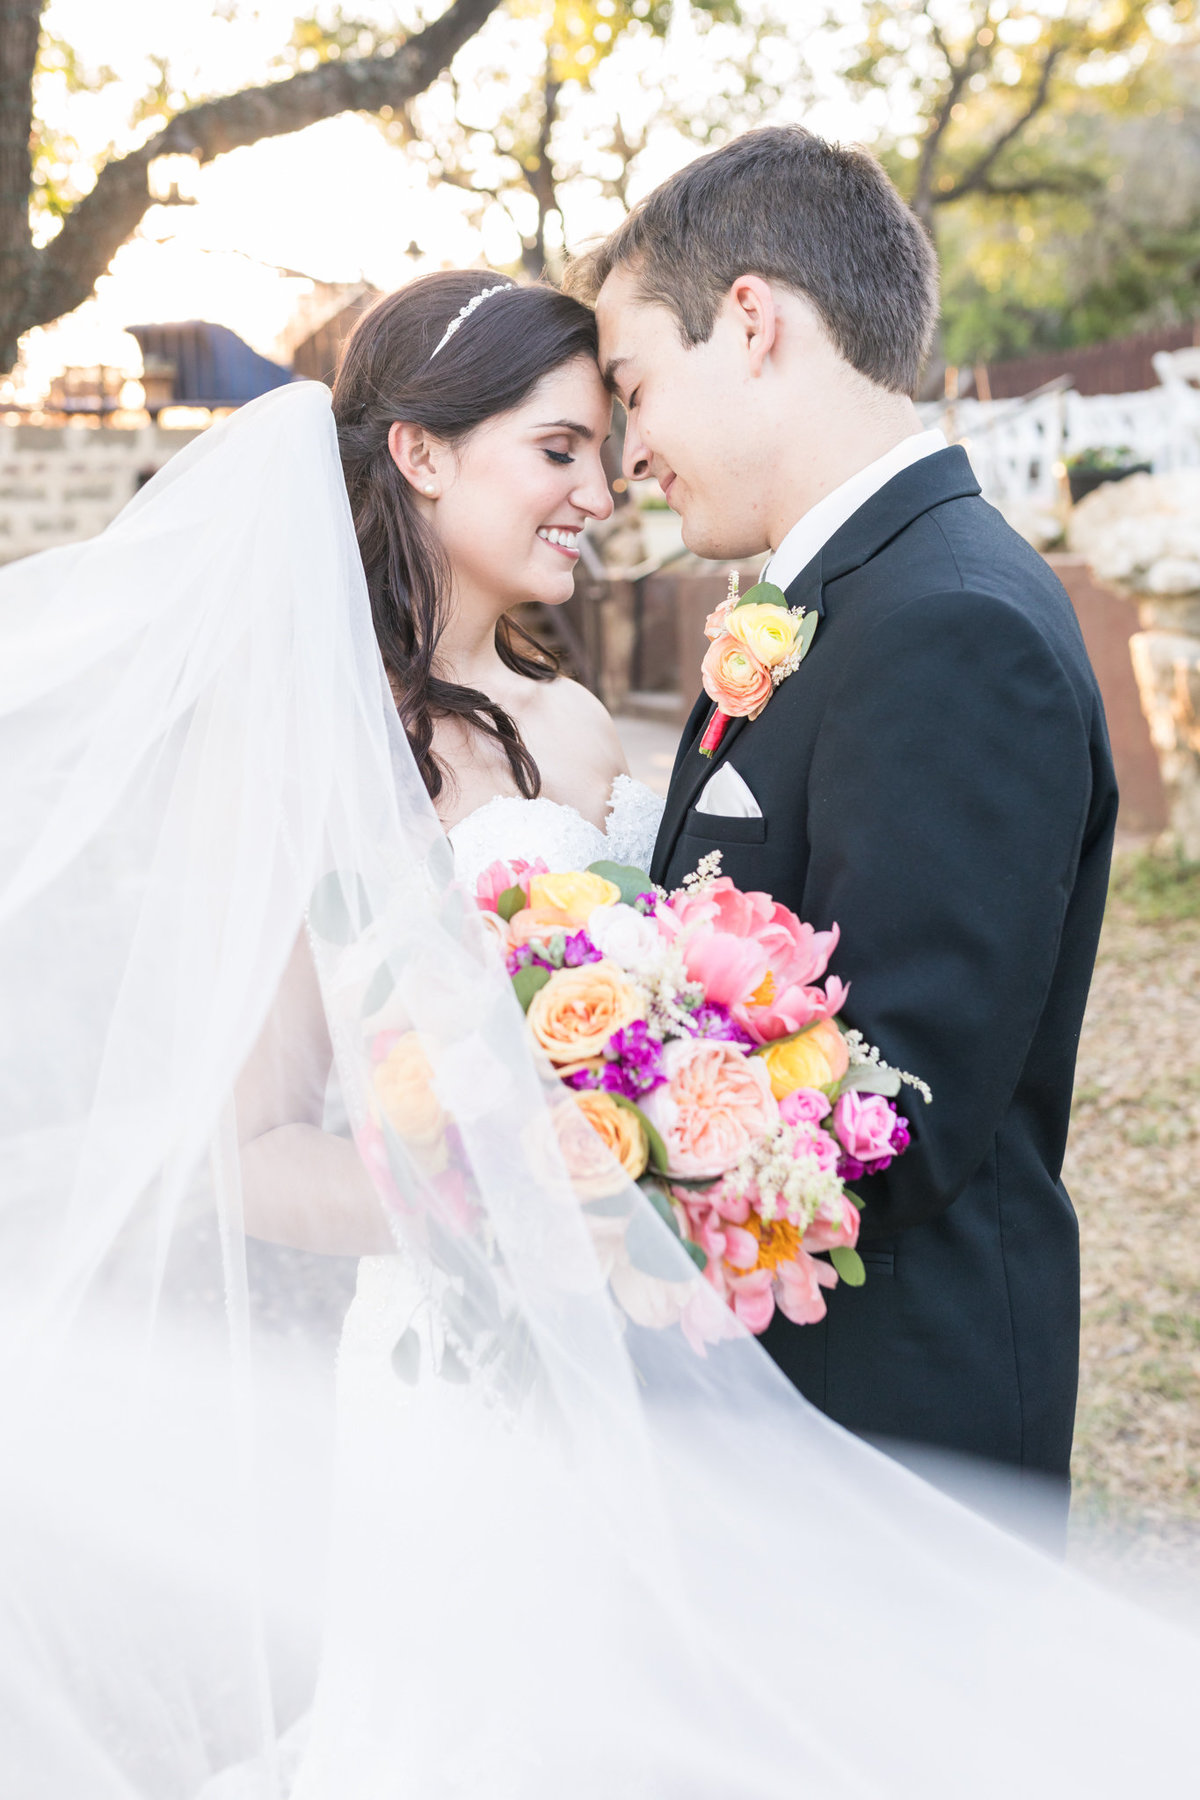 Wedding-at-the-Oaks-at-Heavenly-Dawn-Elizabeth-Studios-0076